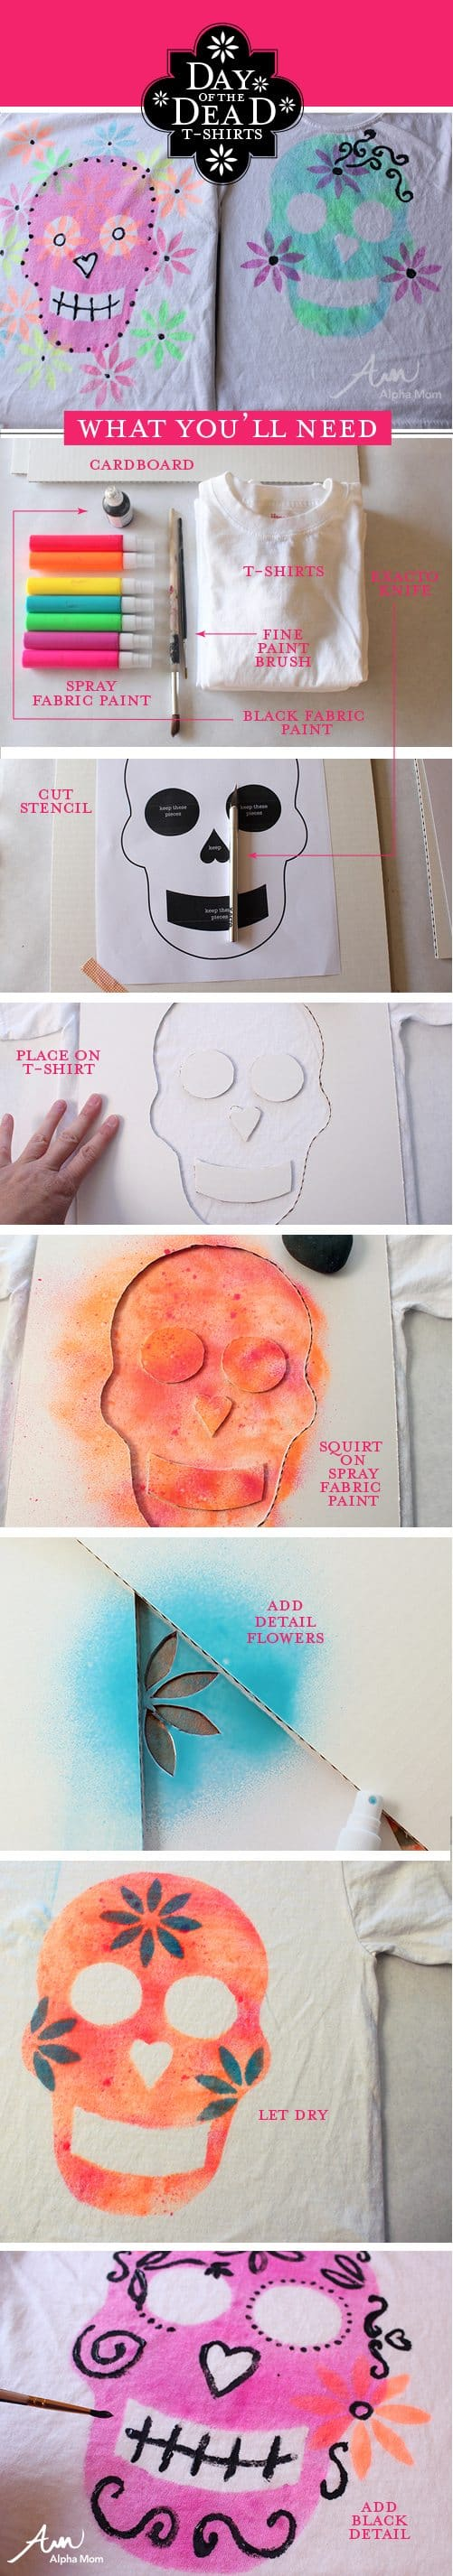 Day of the Dead DIY T-Shirt Tutorial by Brenda Ponnay for Alphamom.com